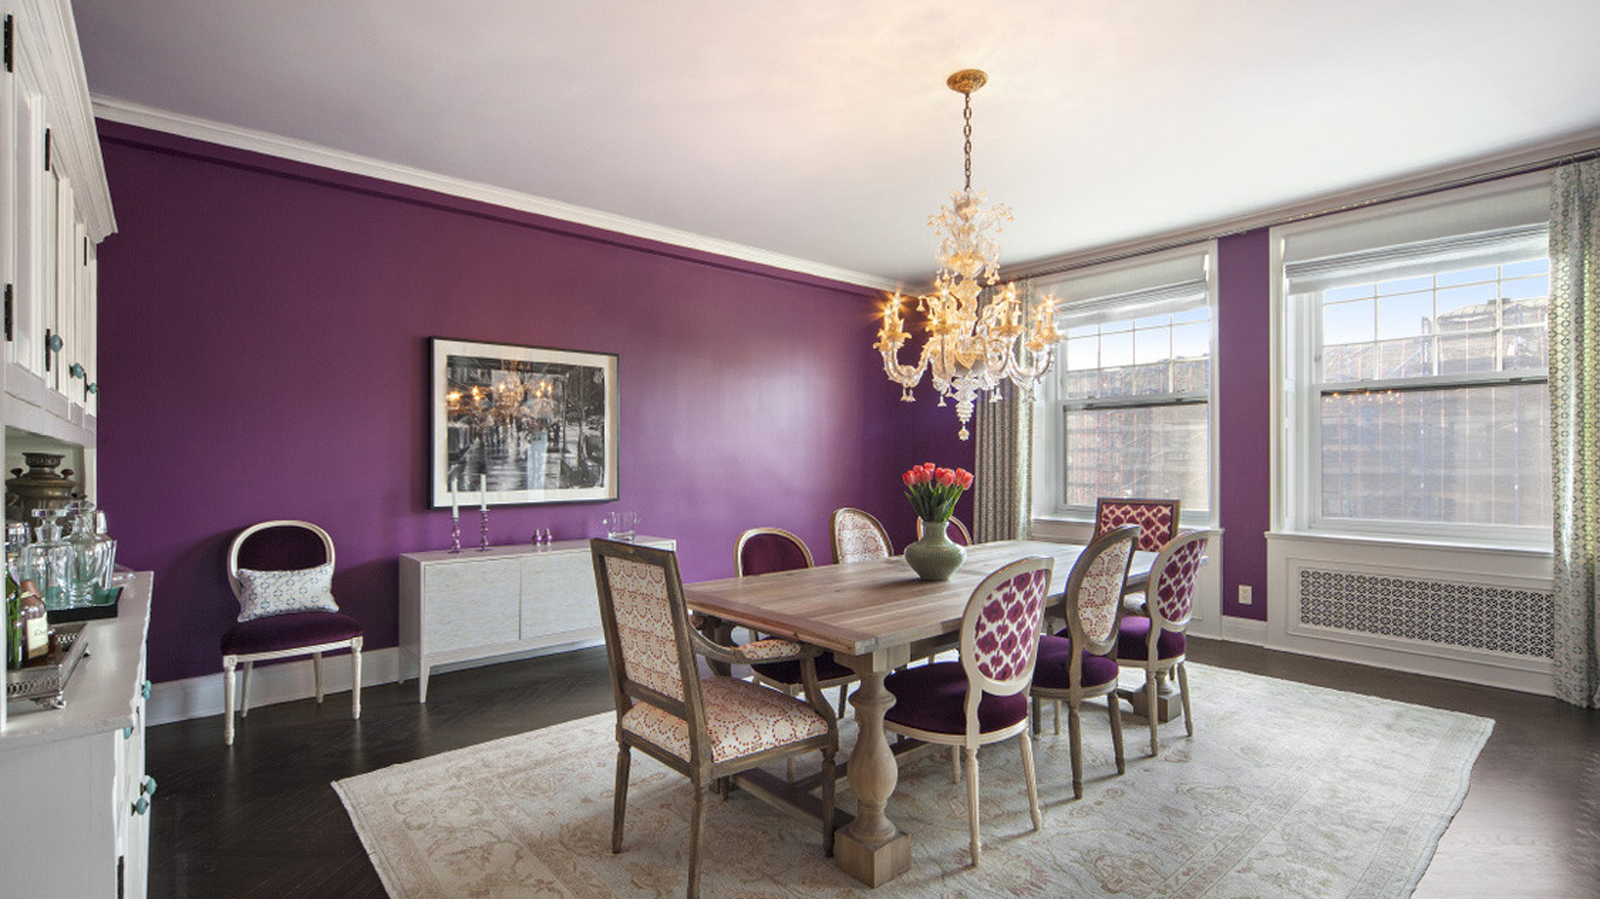 Bohemian dining room with a purple accent wall and mismatched chairs. MEP designed by 2L Engineering.